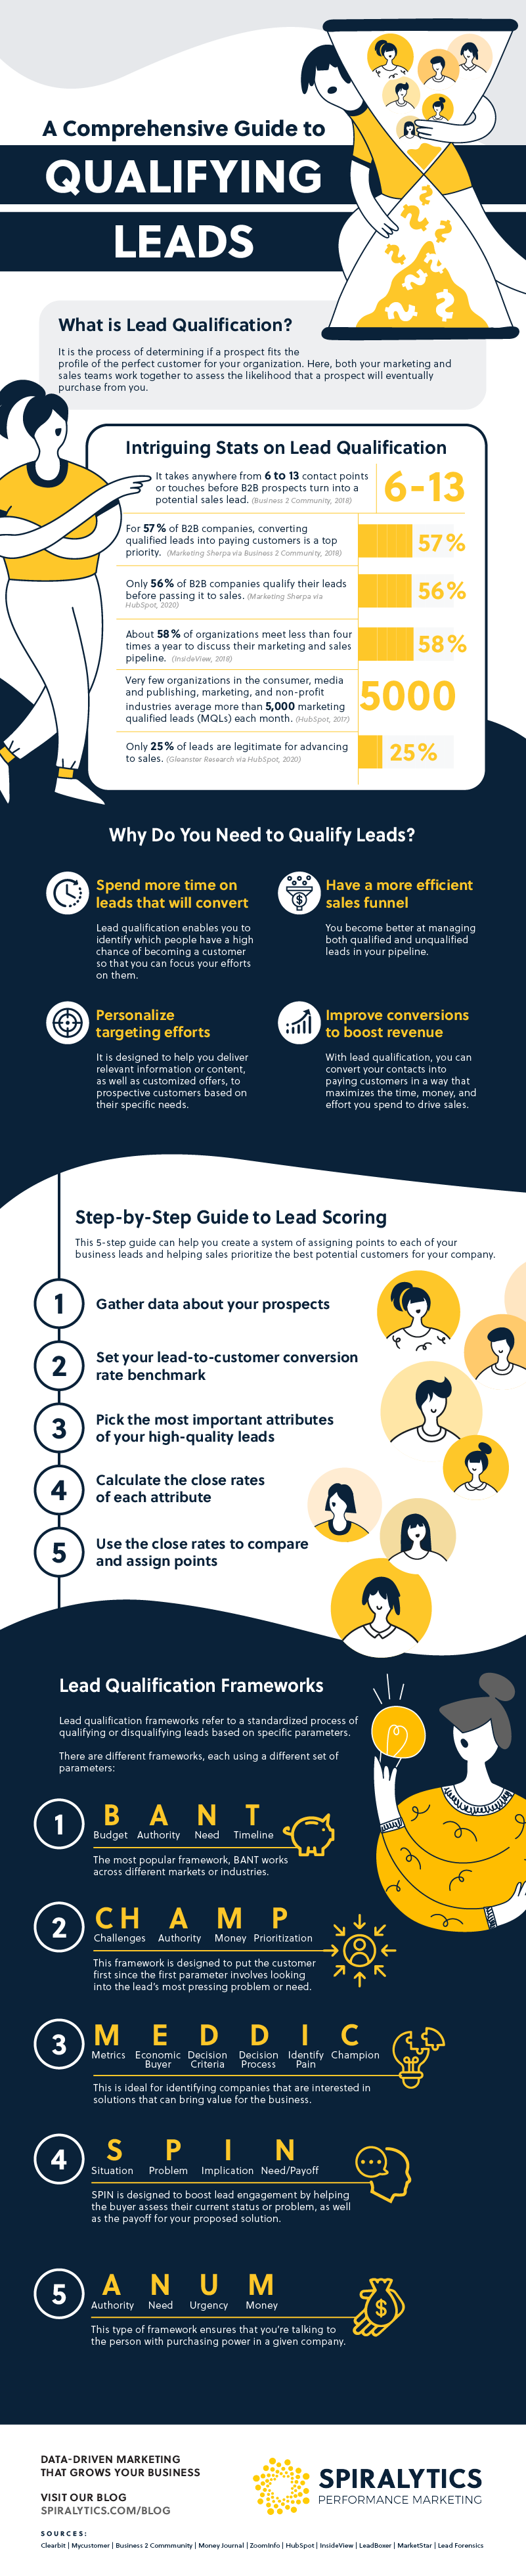 A Comprehensive Guide to Qualifying Leads Infographic